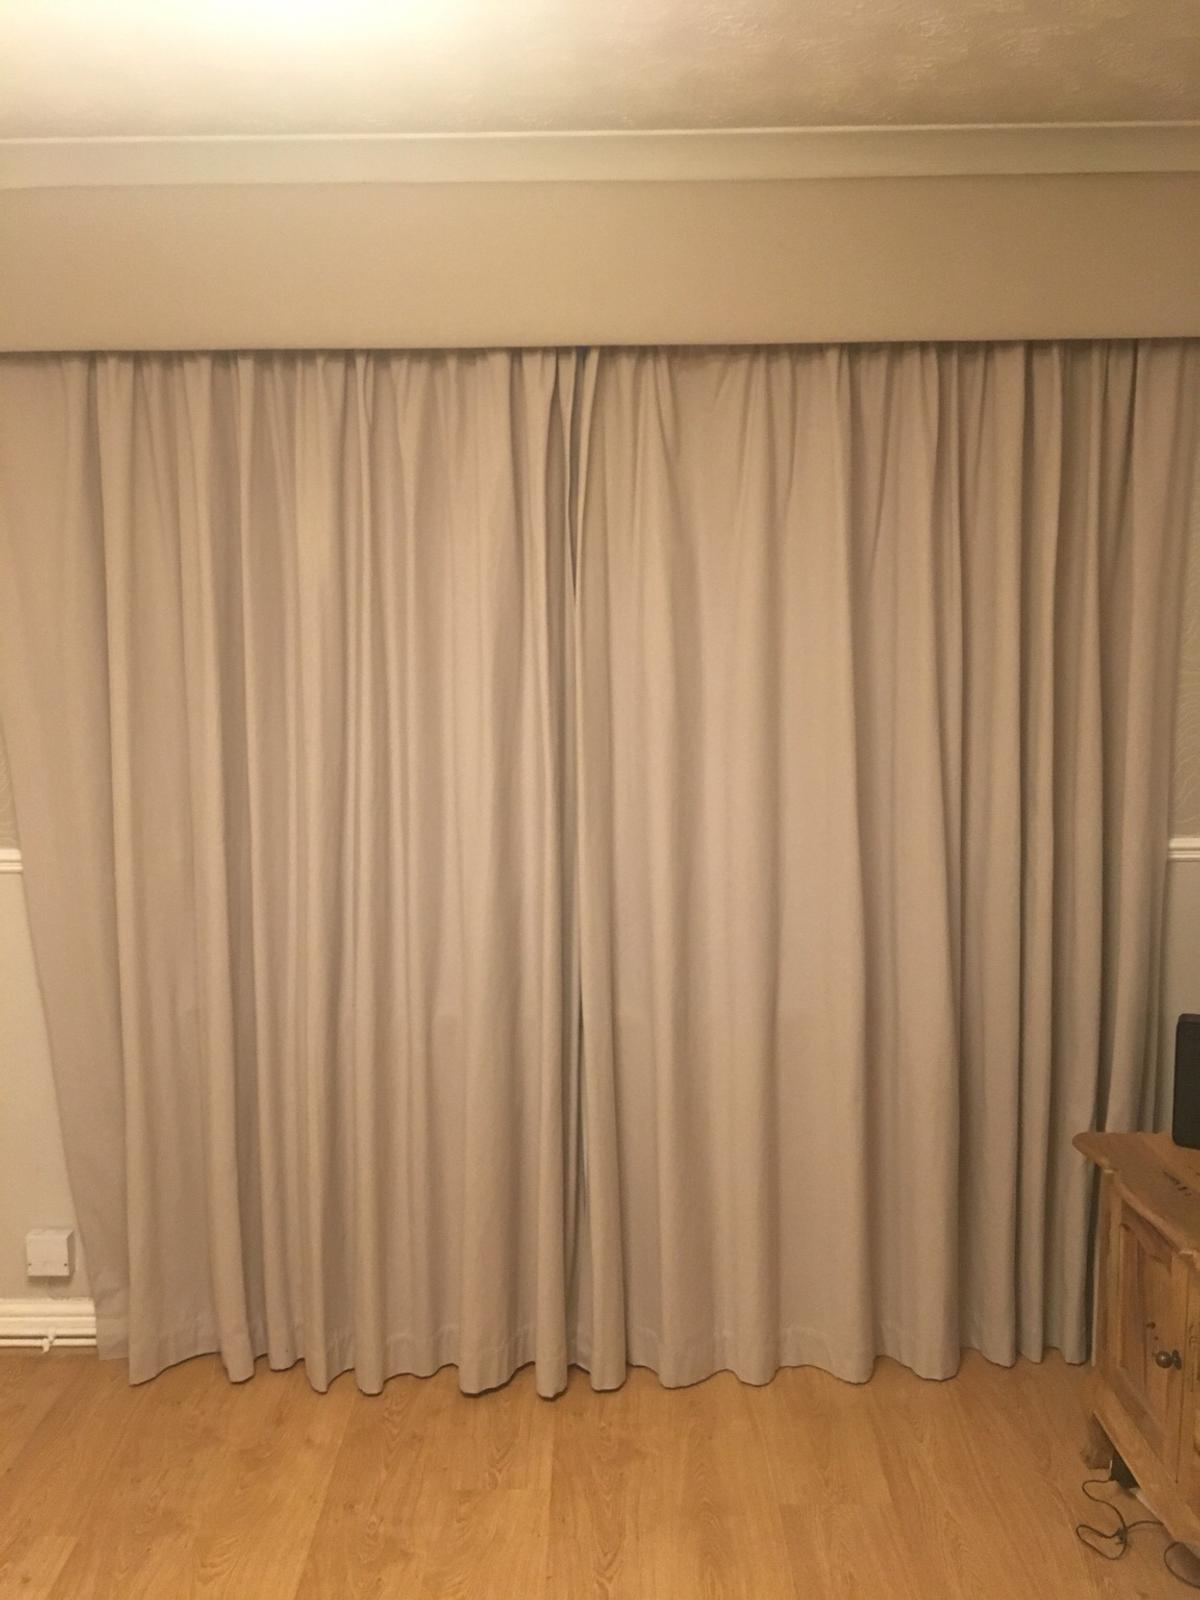 Laura Ashley Dove Grey Curtains Box Valance In Ol16 Rochdale For 160 00 For Sale Shpock